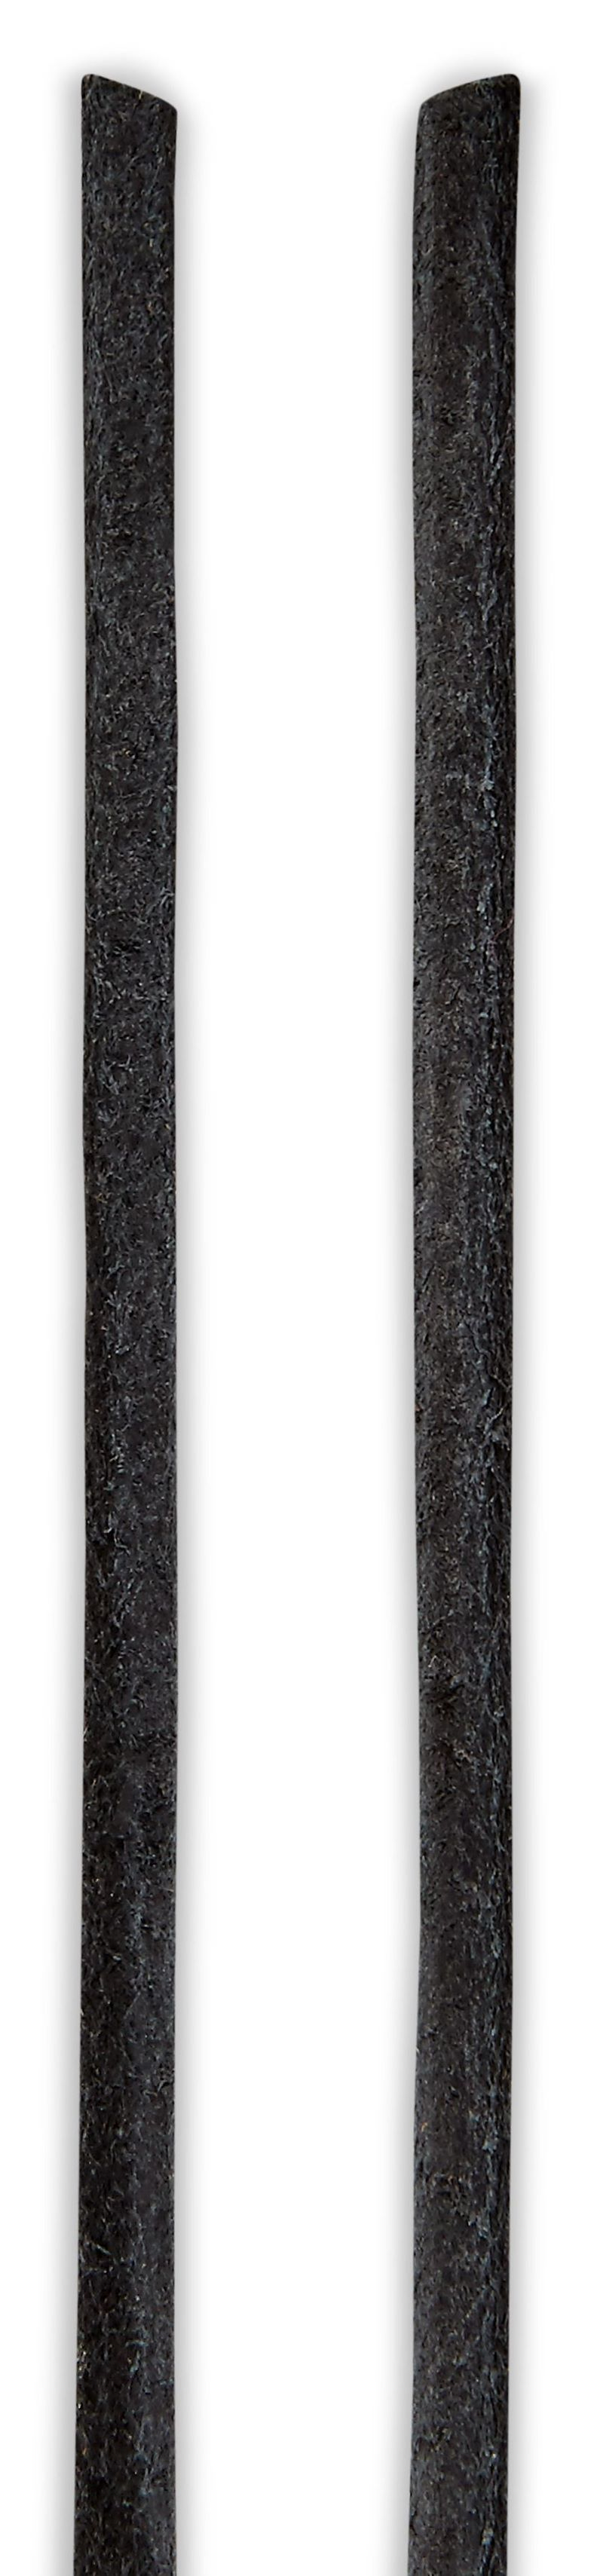 Leather Lace round (Black)